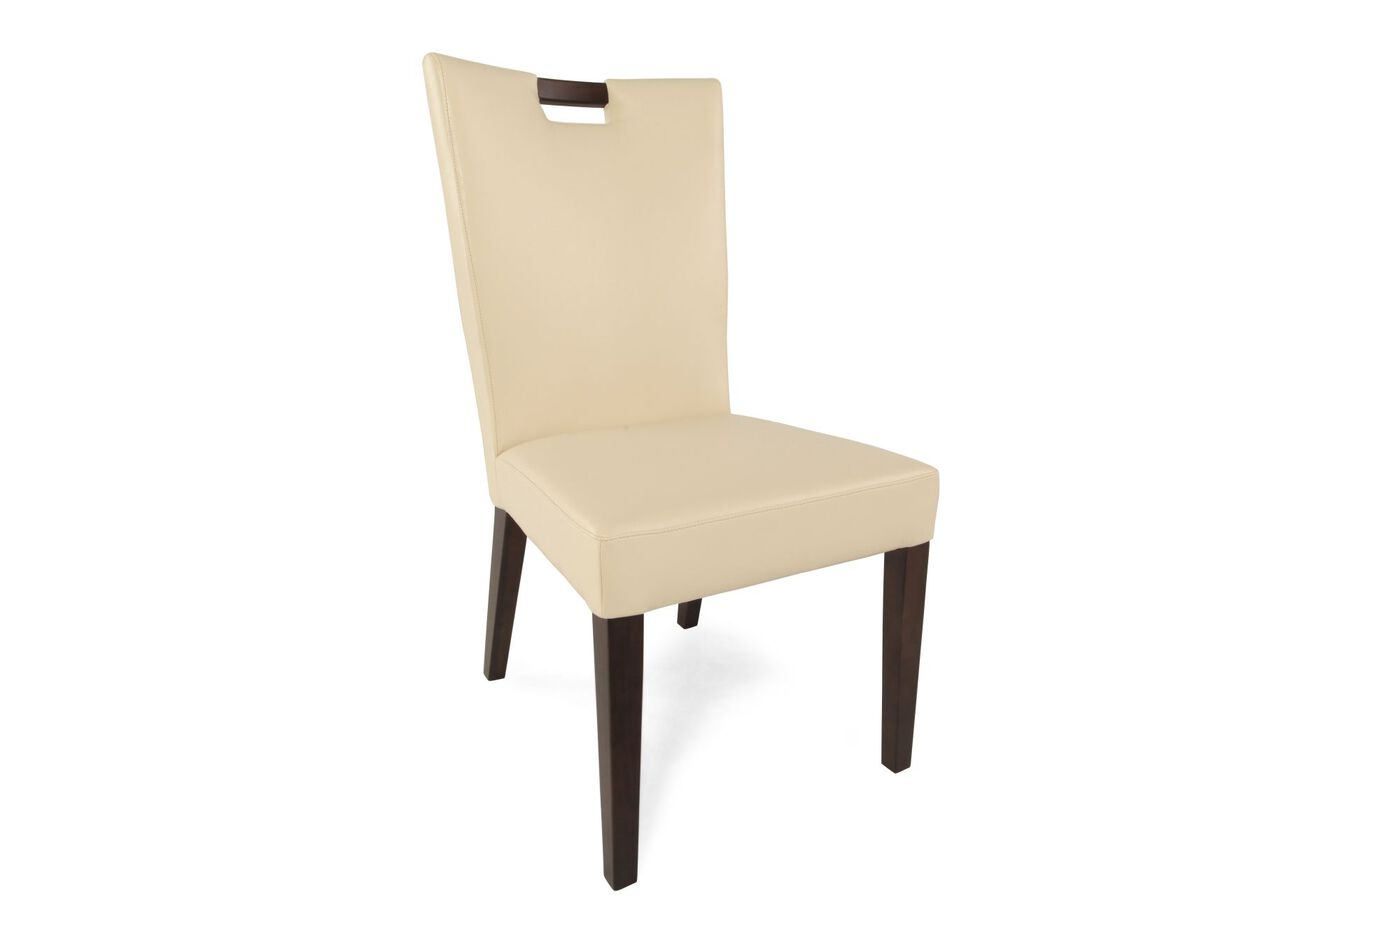 Boulevard Ice Dining Chair   Boulevard Ice Dining Chair. Boulevard Ice Dining Chair   Mathis Brothers Furniture